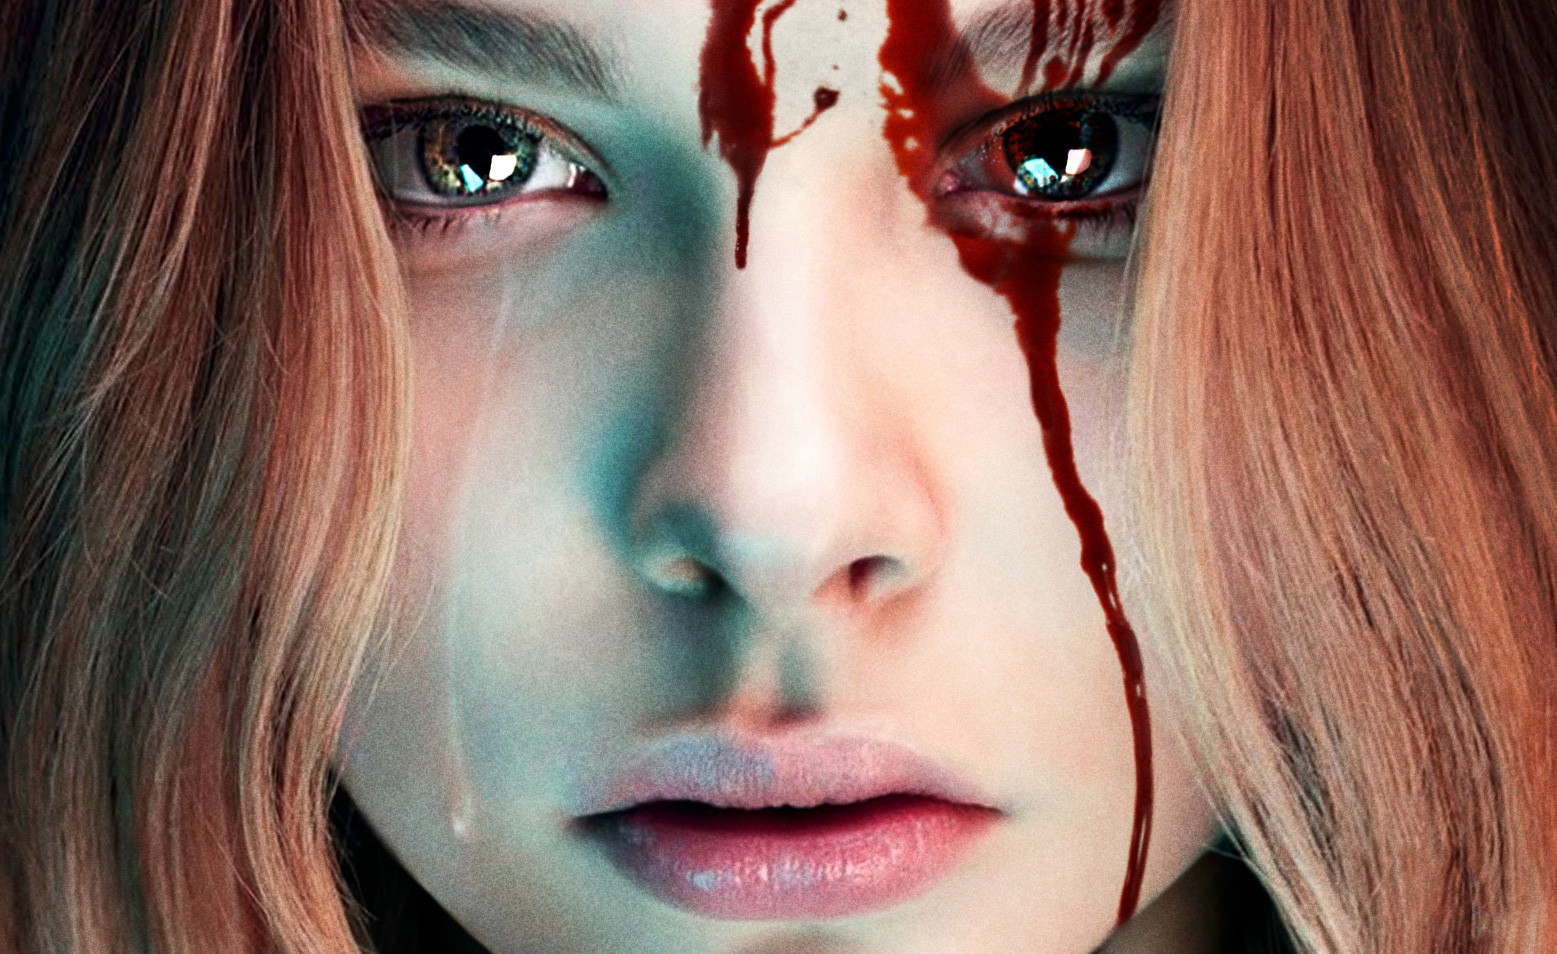 Syfy - Watch Full Episodes   The creepy things you'll hear if you dial that number in the Carrie trailer